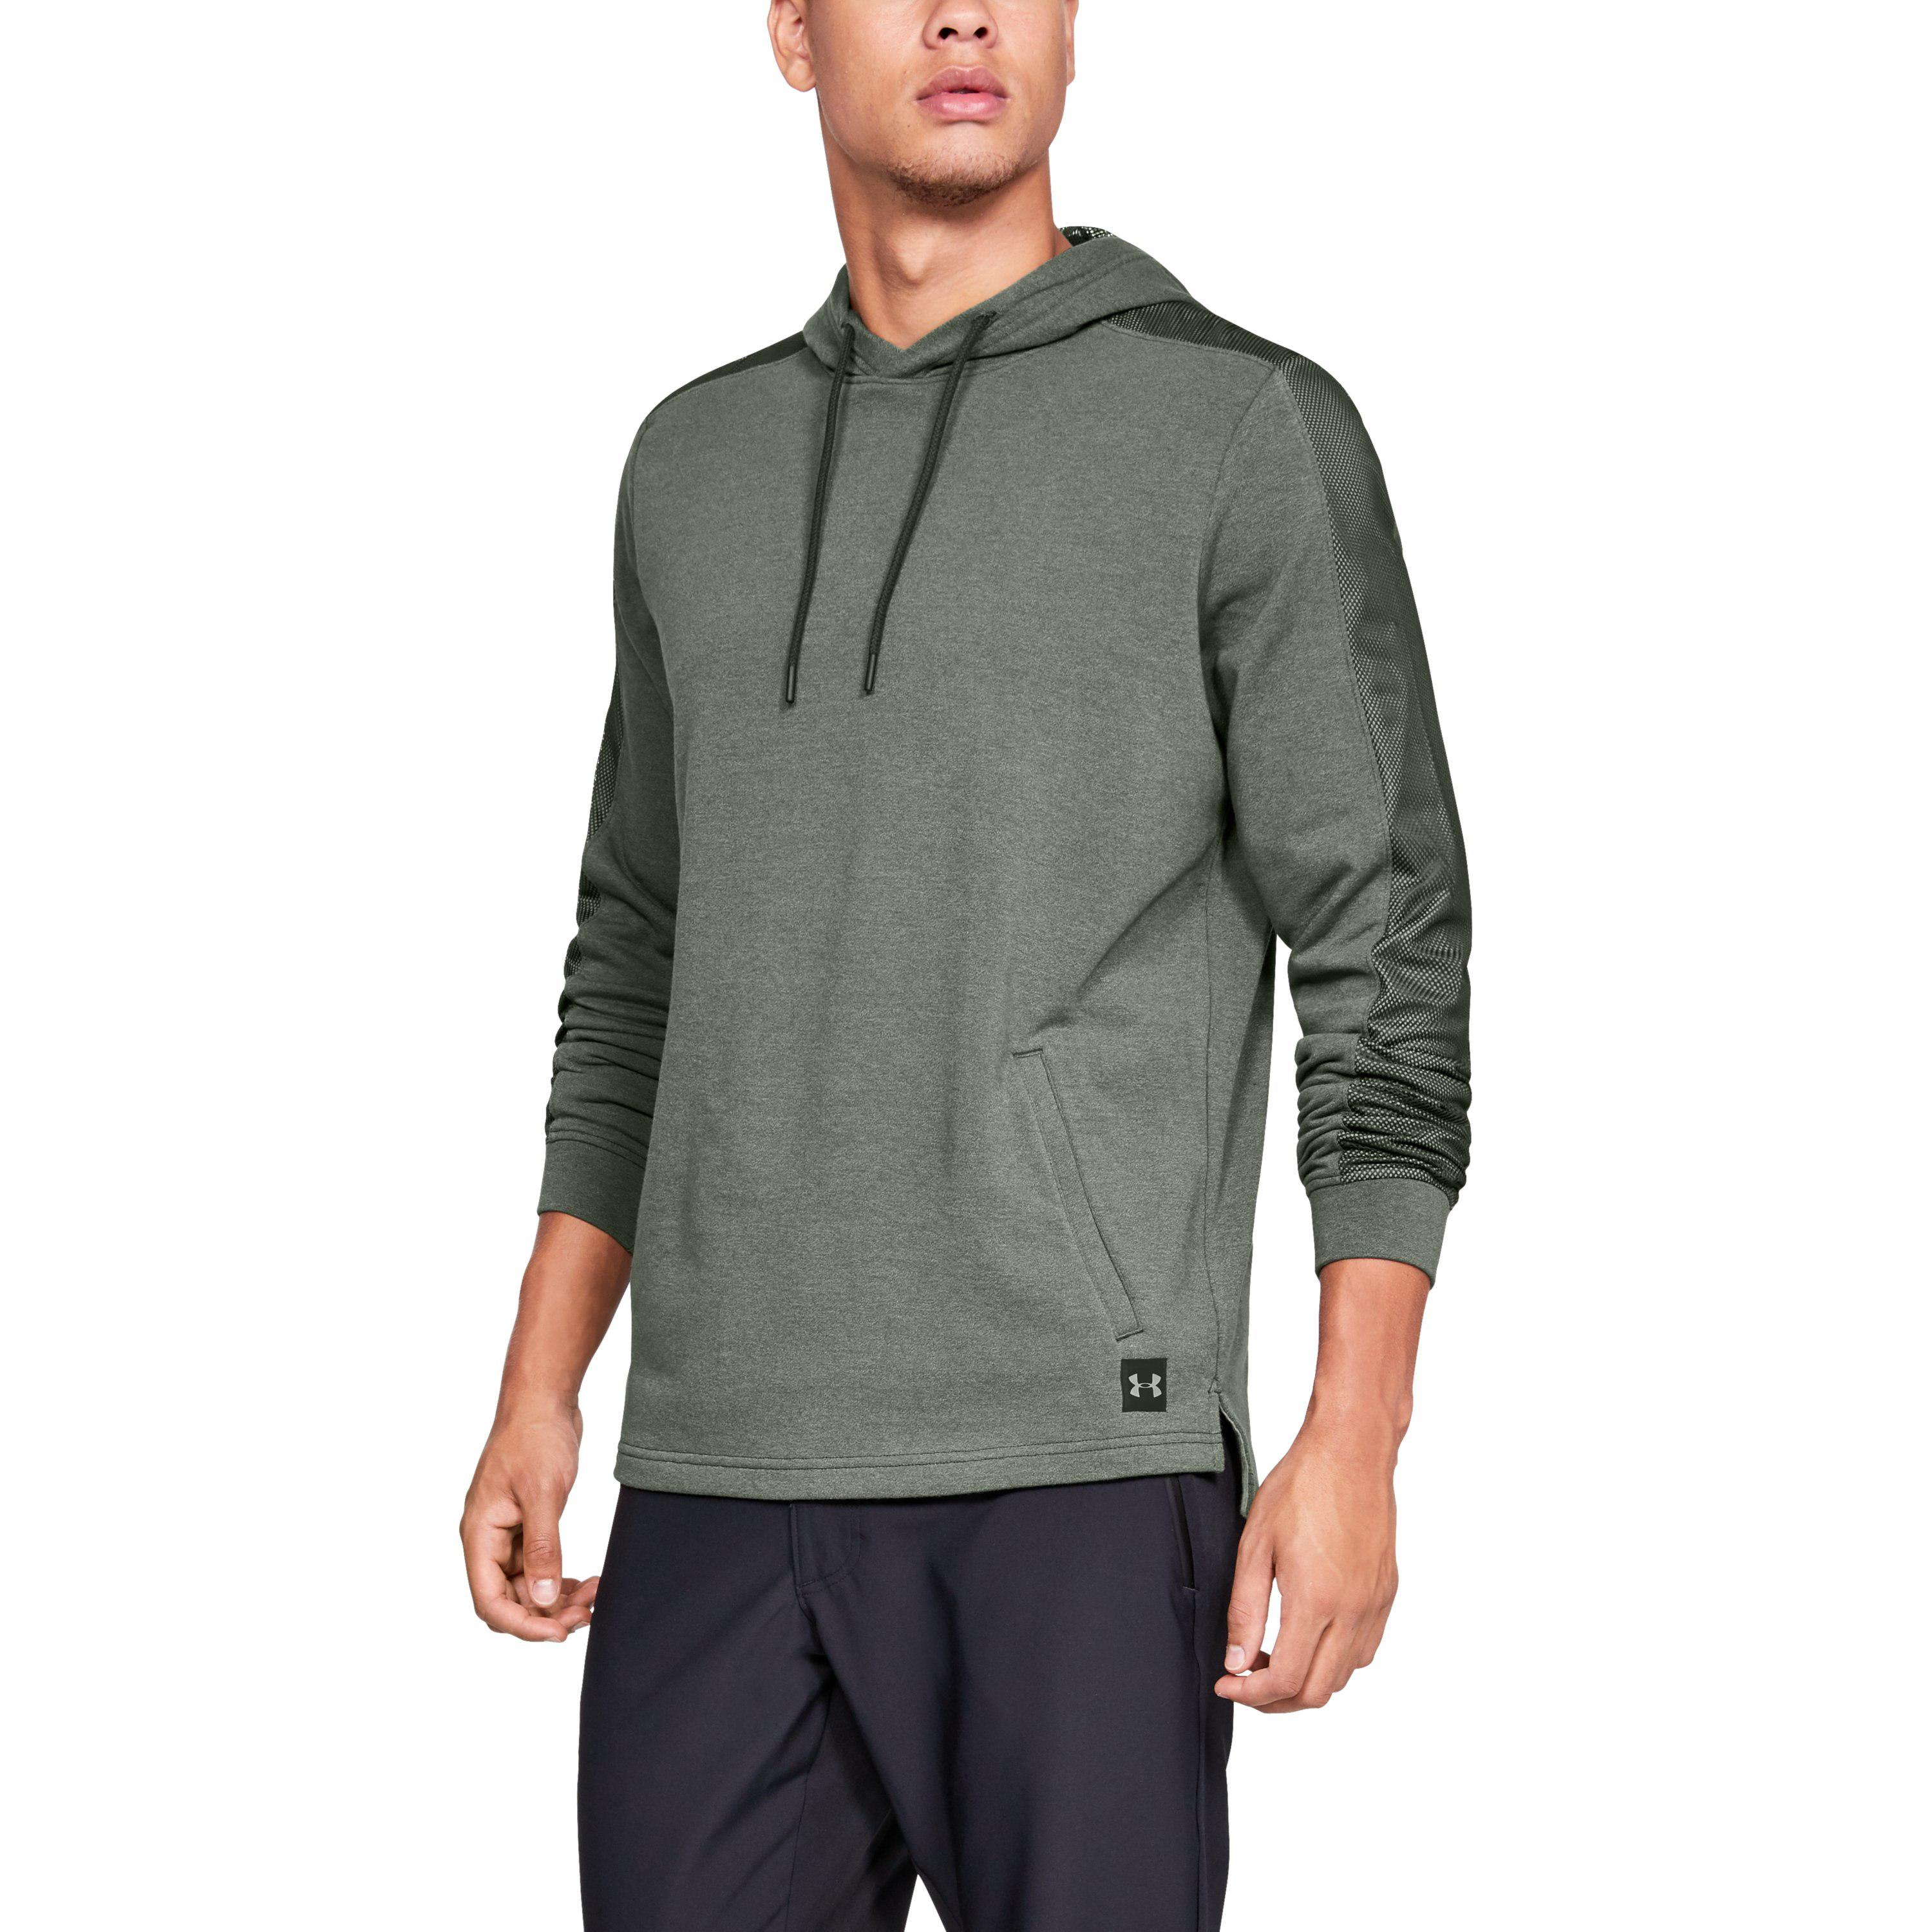 run shoes agreatvarietyofmodels largest selection of 2019 Men's Ua Microthread Terry Hoodie